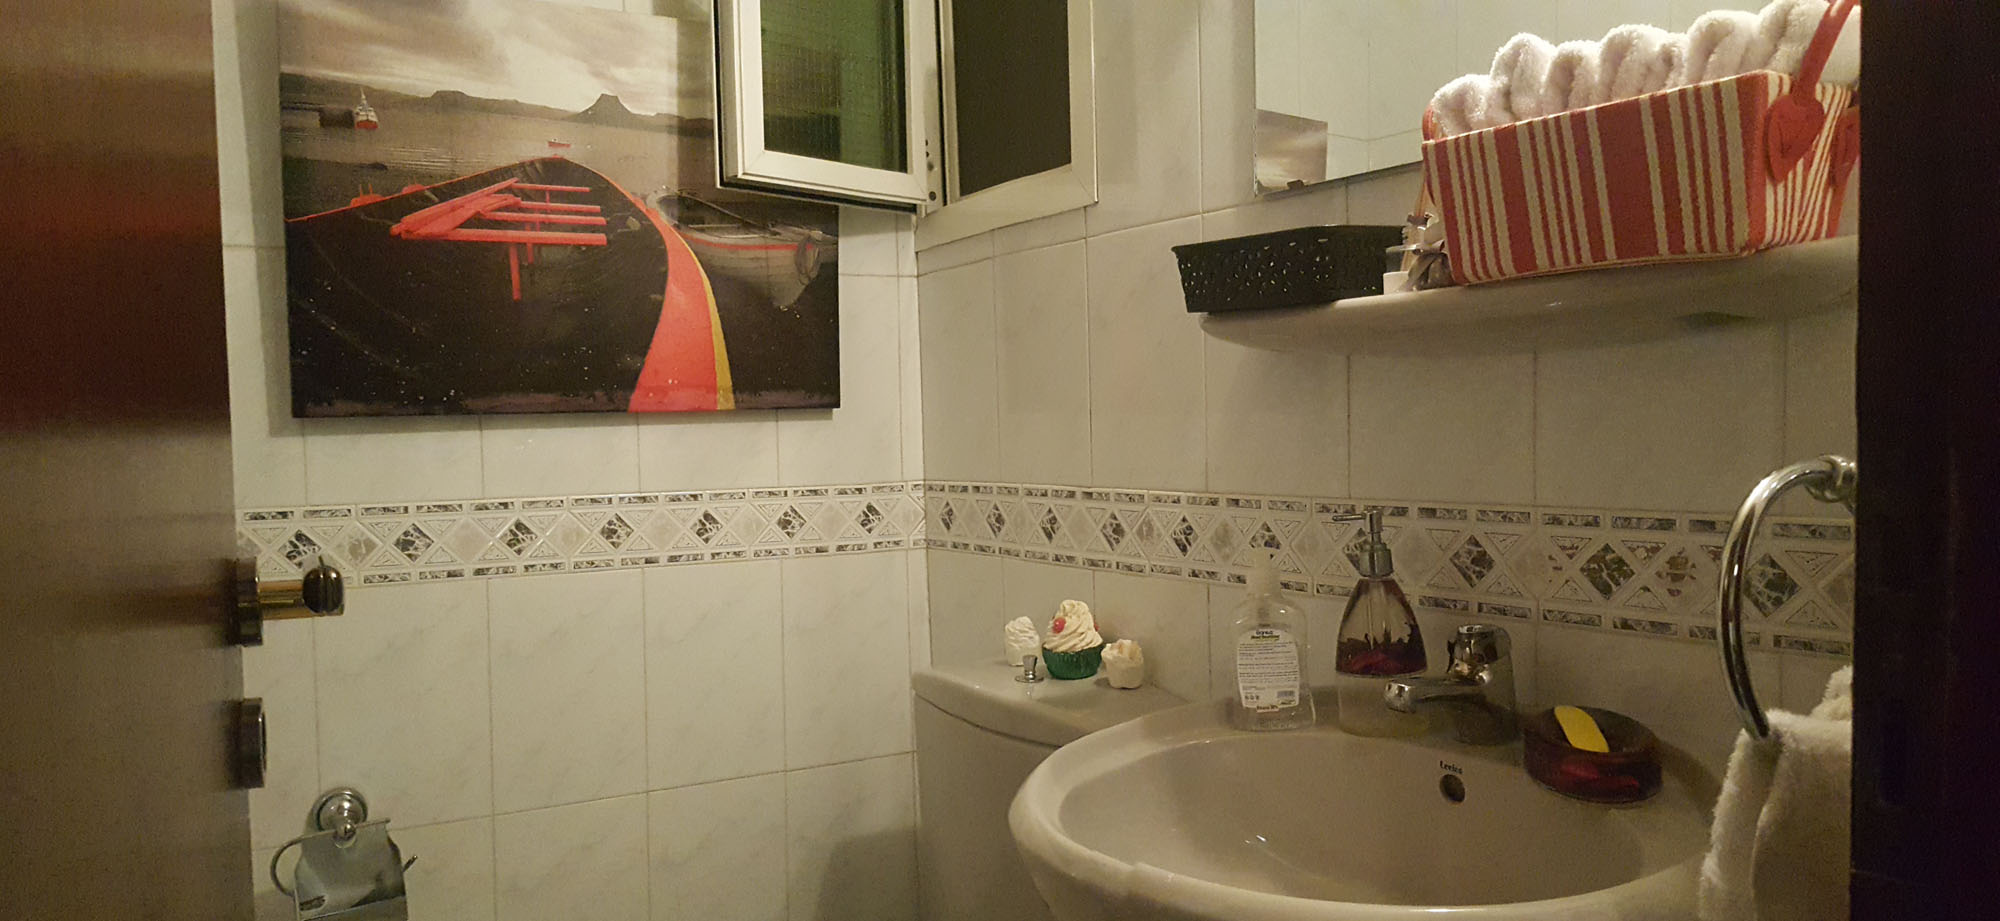 Guest bathroom.jpg